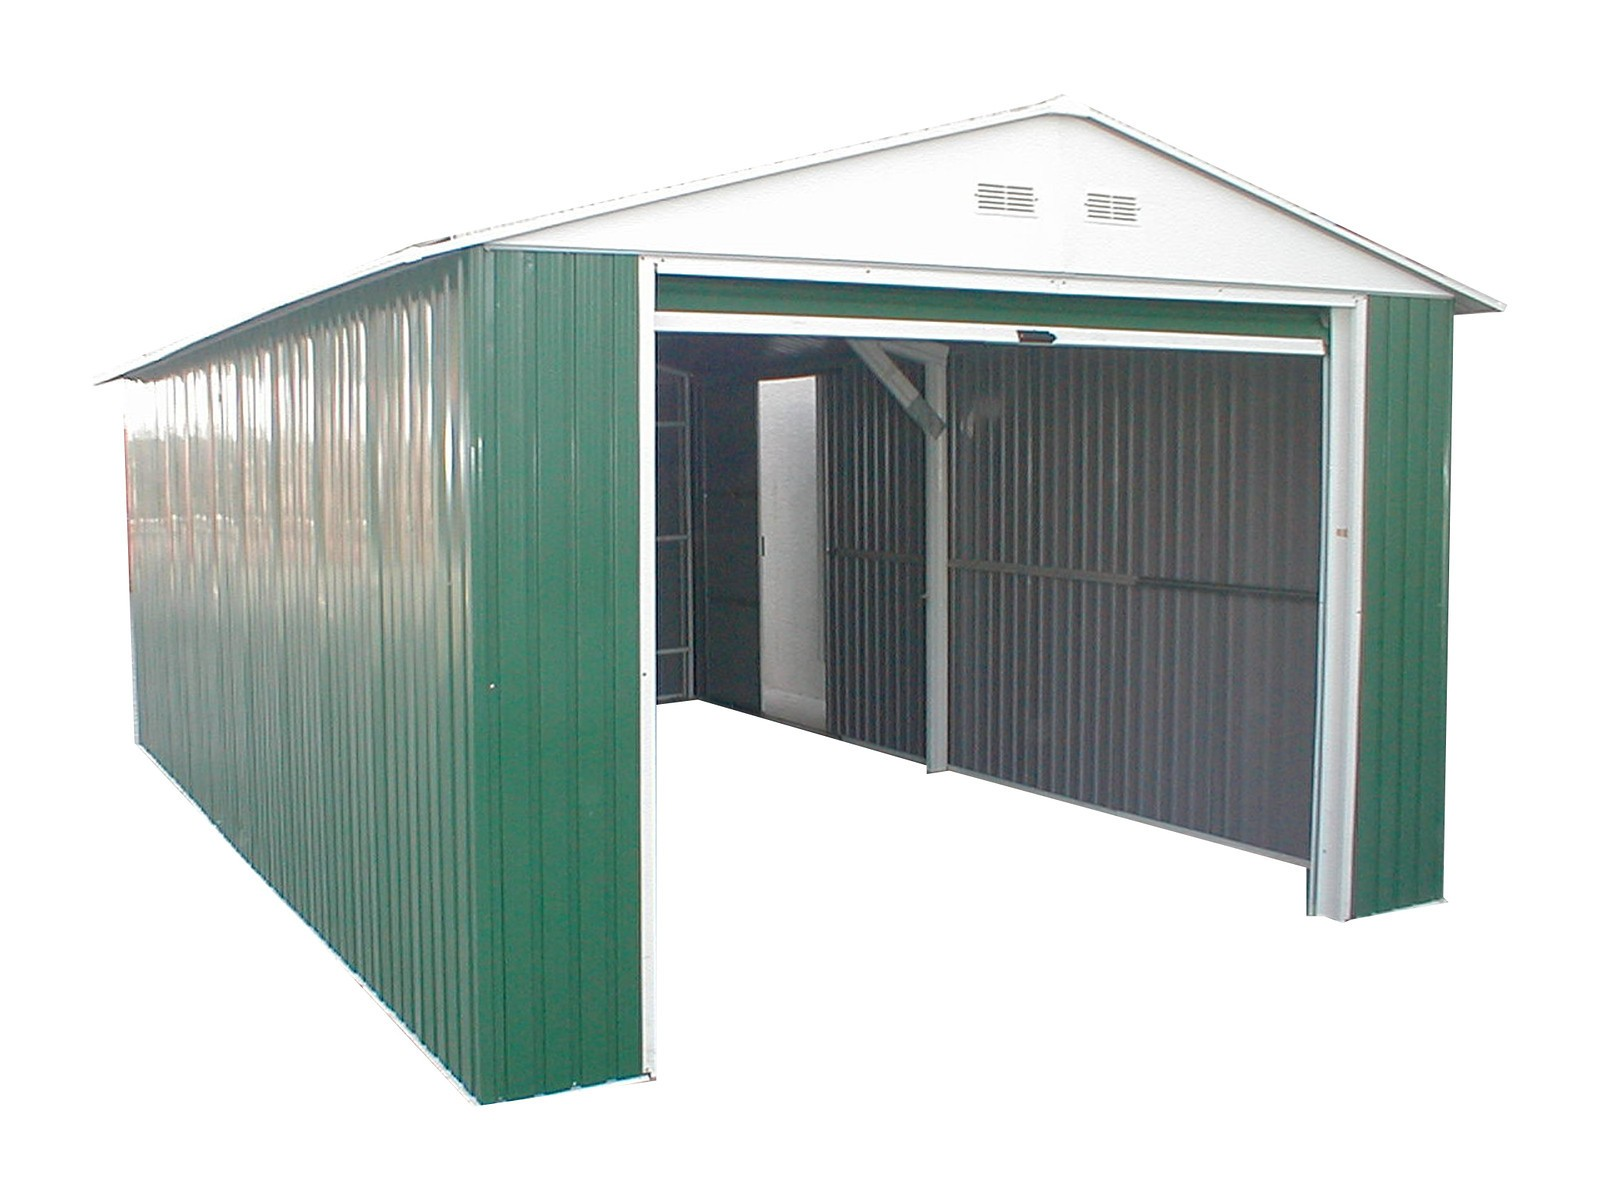 Duramax 54961 Metal Garage u2013 6u0027 Metal Storage Shed Extension - Green with White Trim  sc 1 st  Duramax Sheds & Duramax 55261 Imperial Metal Building 12x32 (55261) is on sale. Free ...